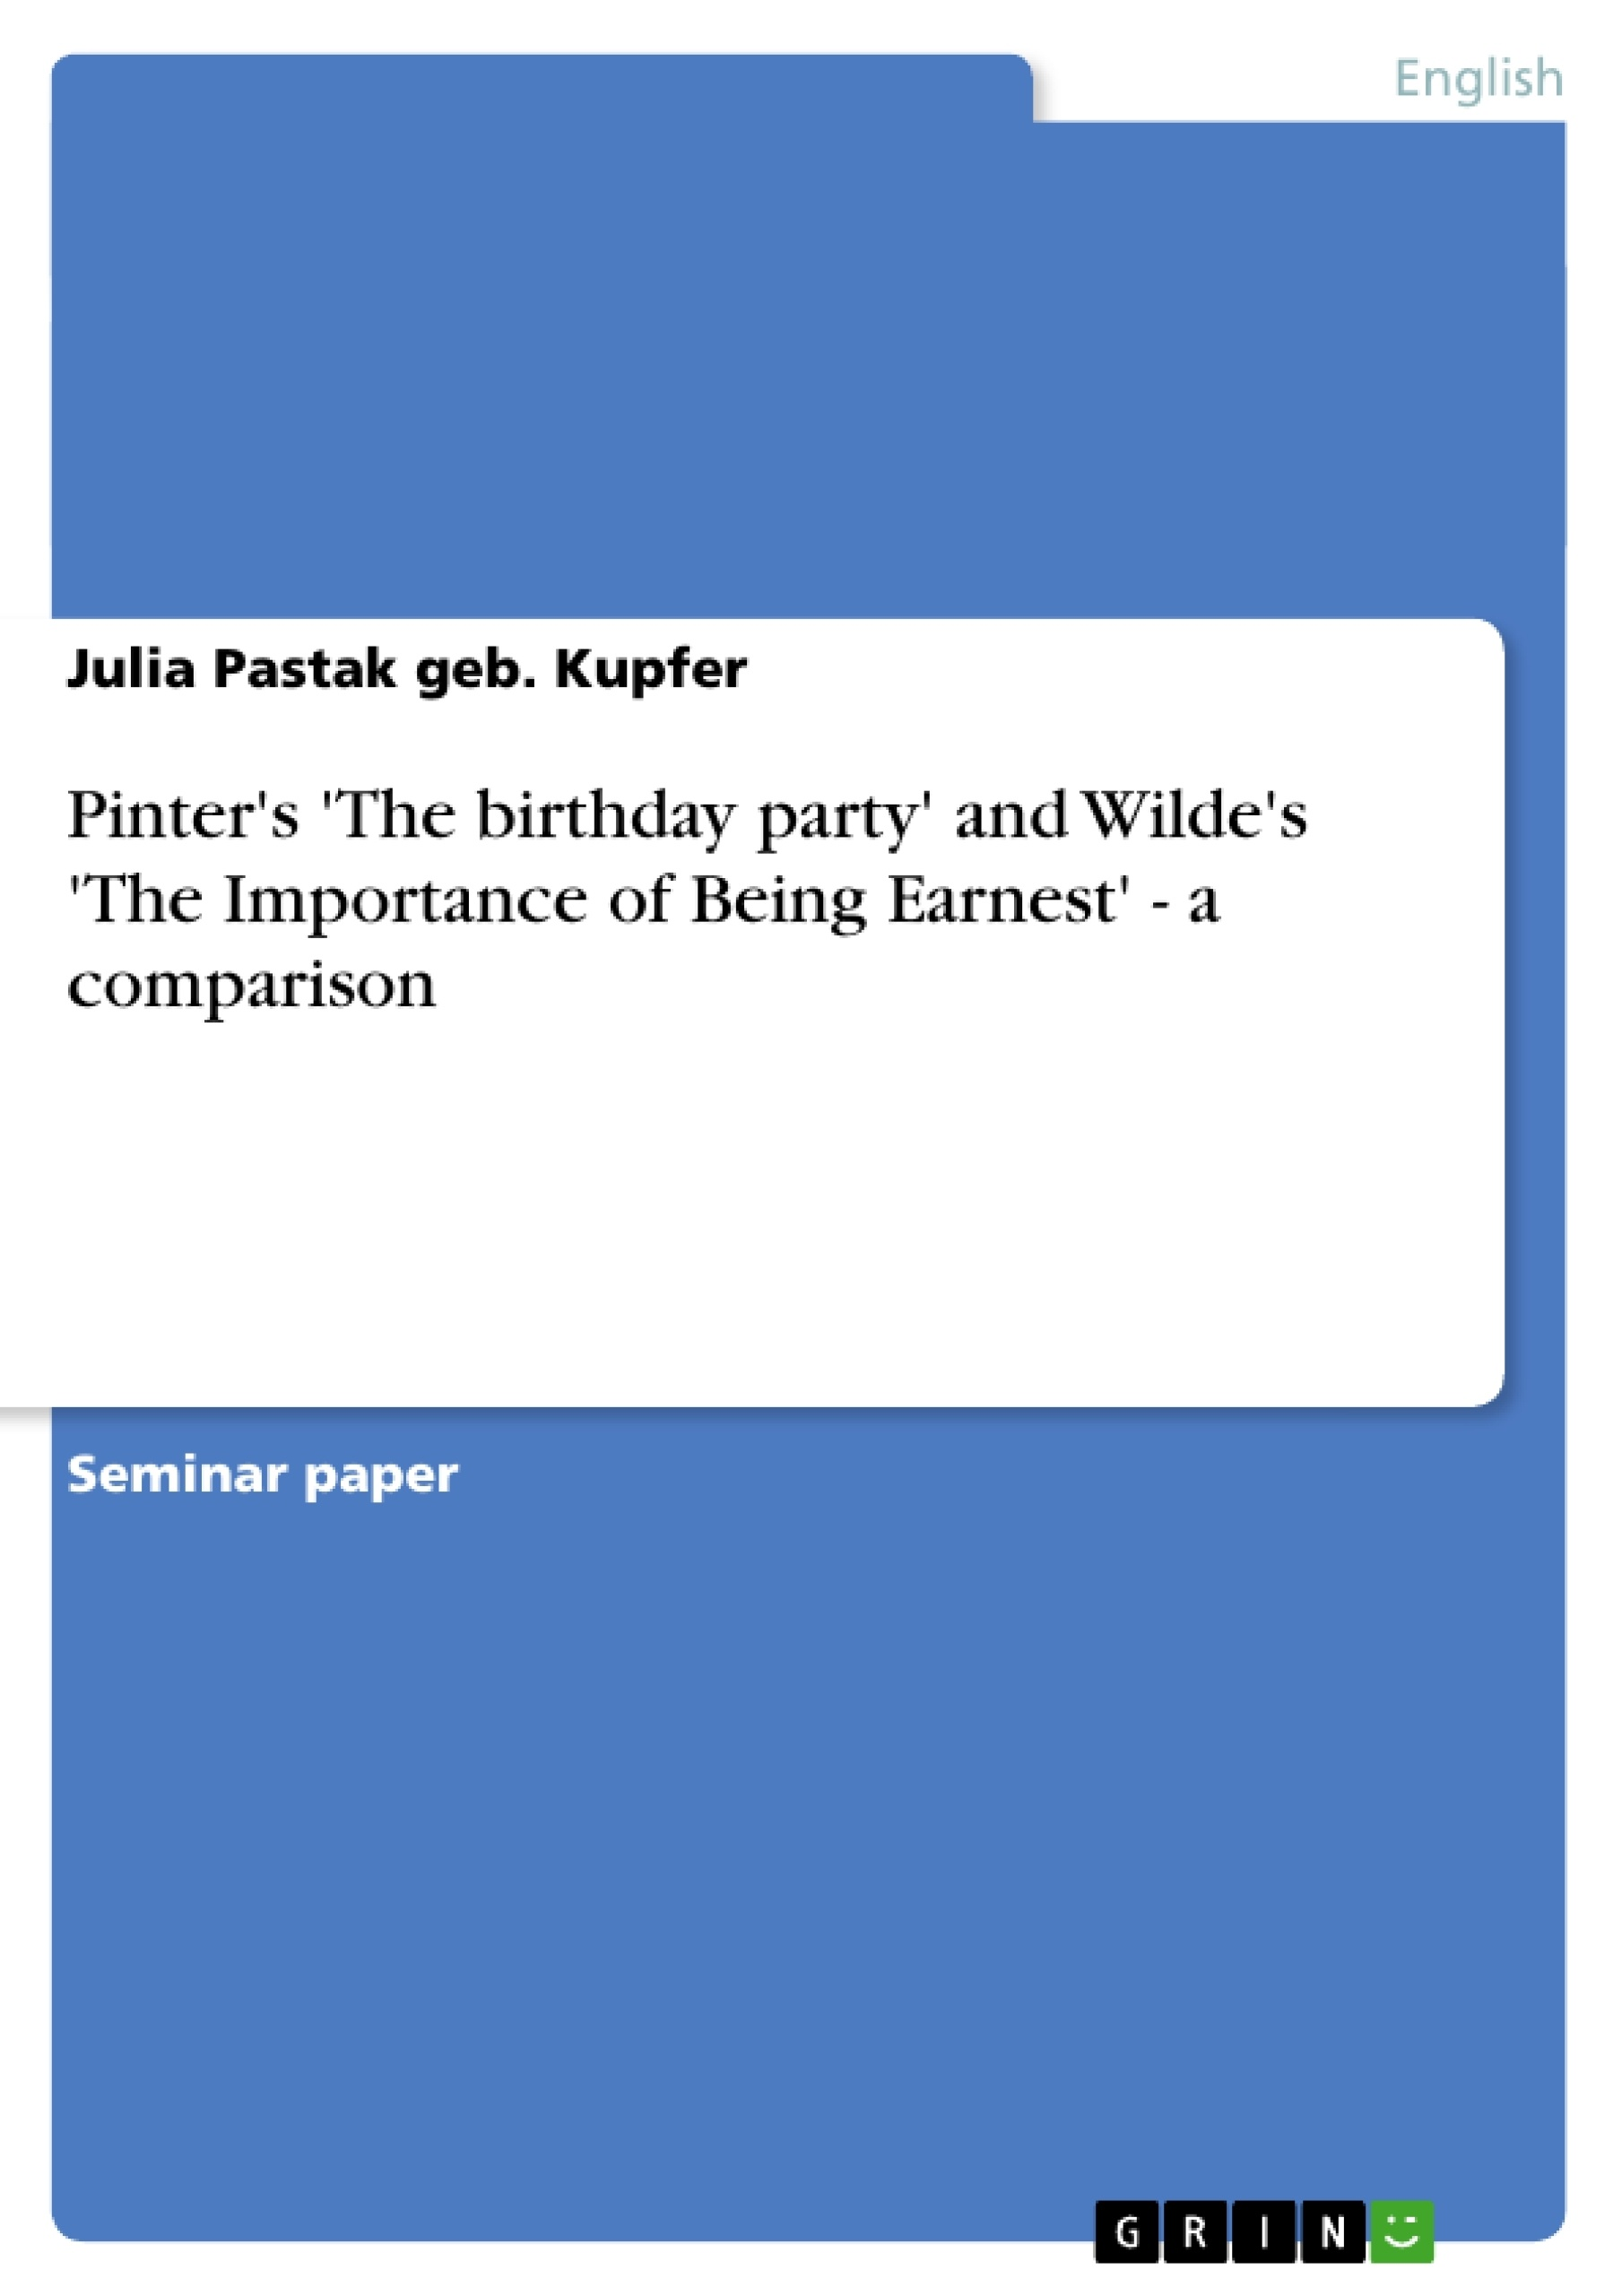 victorian era and the importance of being earnest essay This free english literature essay on essay: the importance of being earnest is perfect for english literature students to use as an example  in the victorian era .